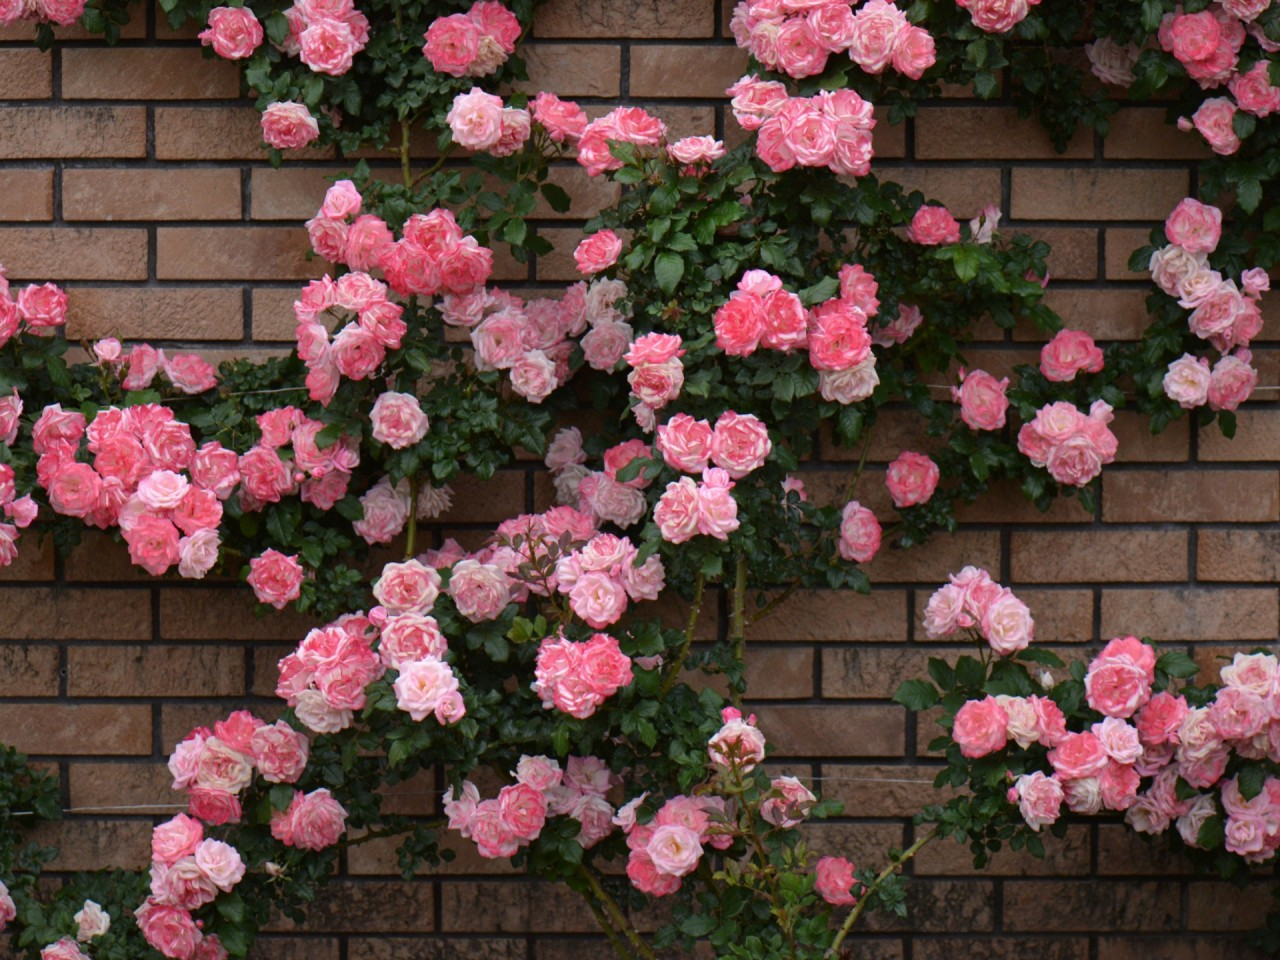 Rose Bush Amp Brick Wall Wallpapers Rose Bush Amp Brick Wall